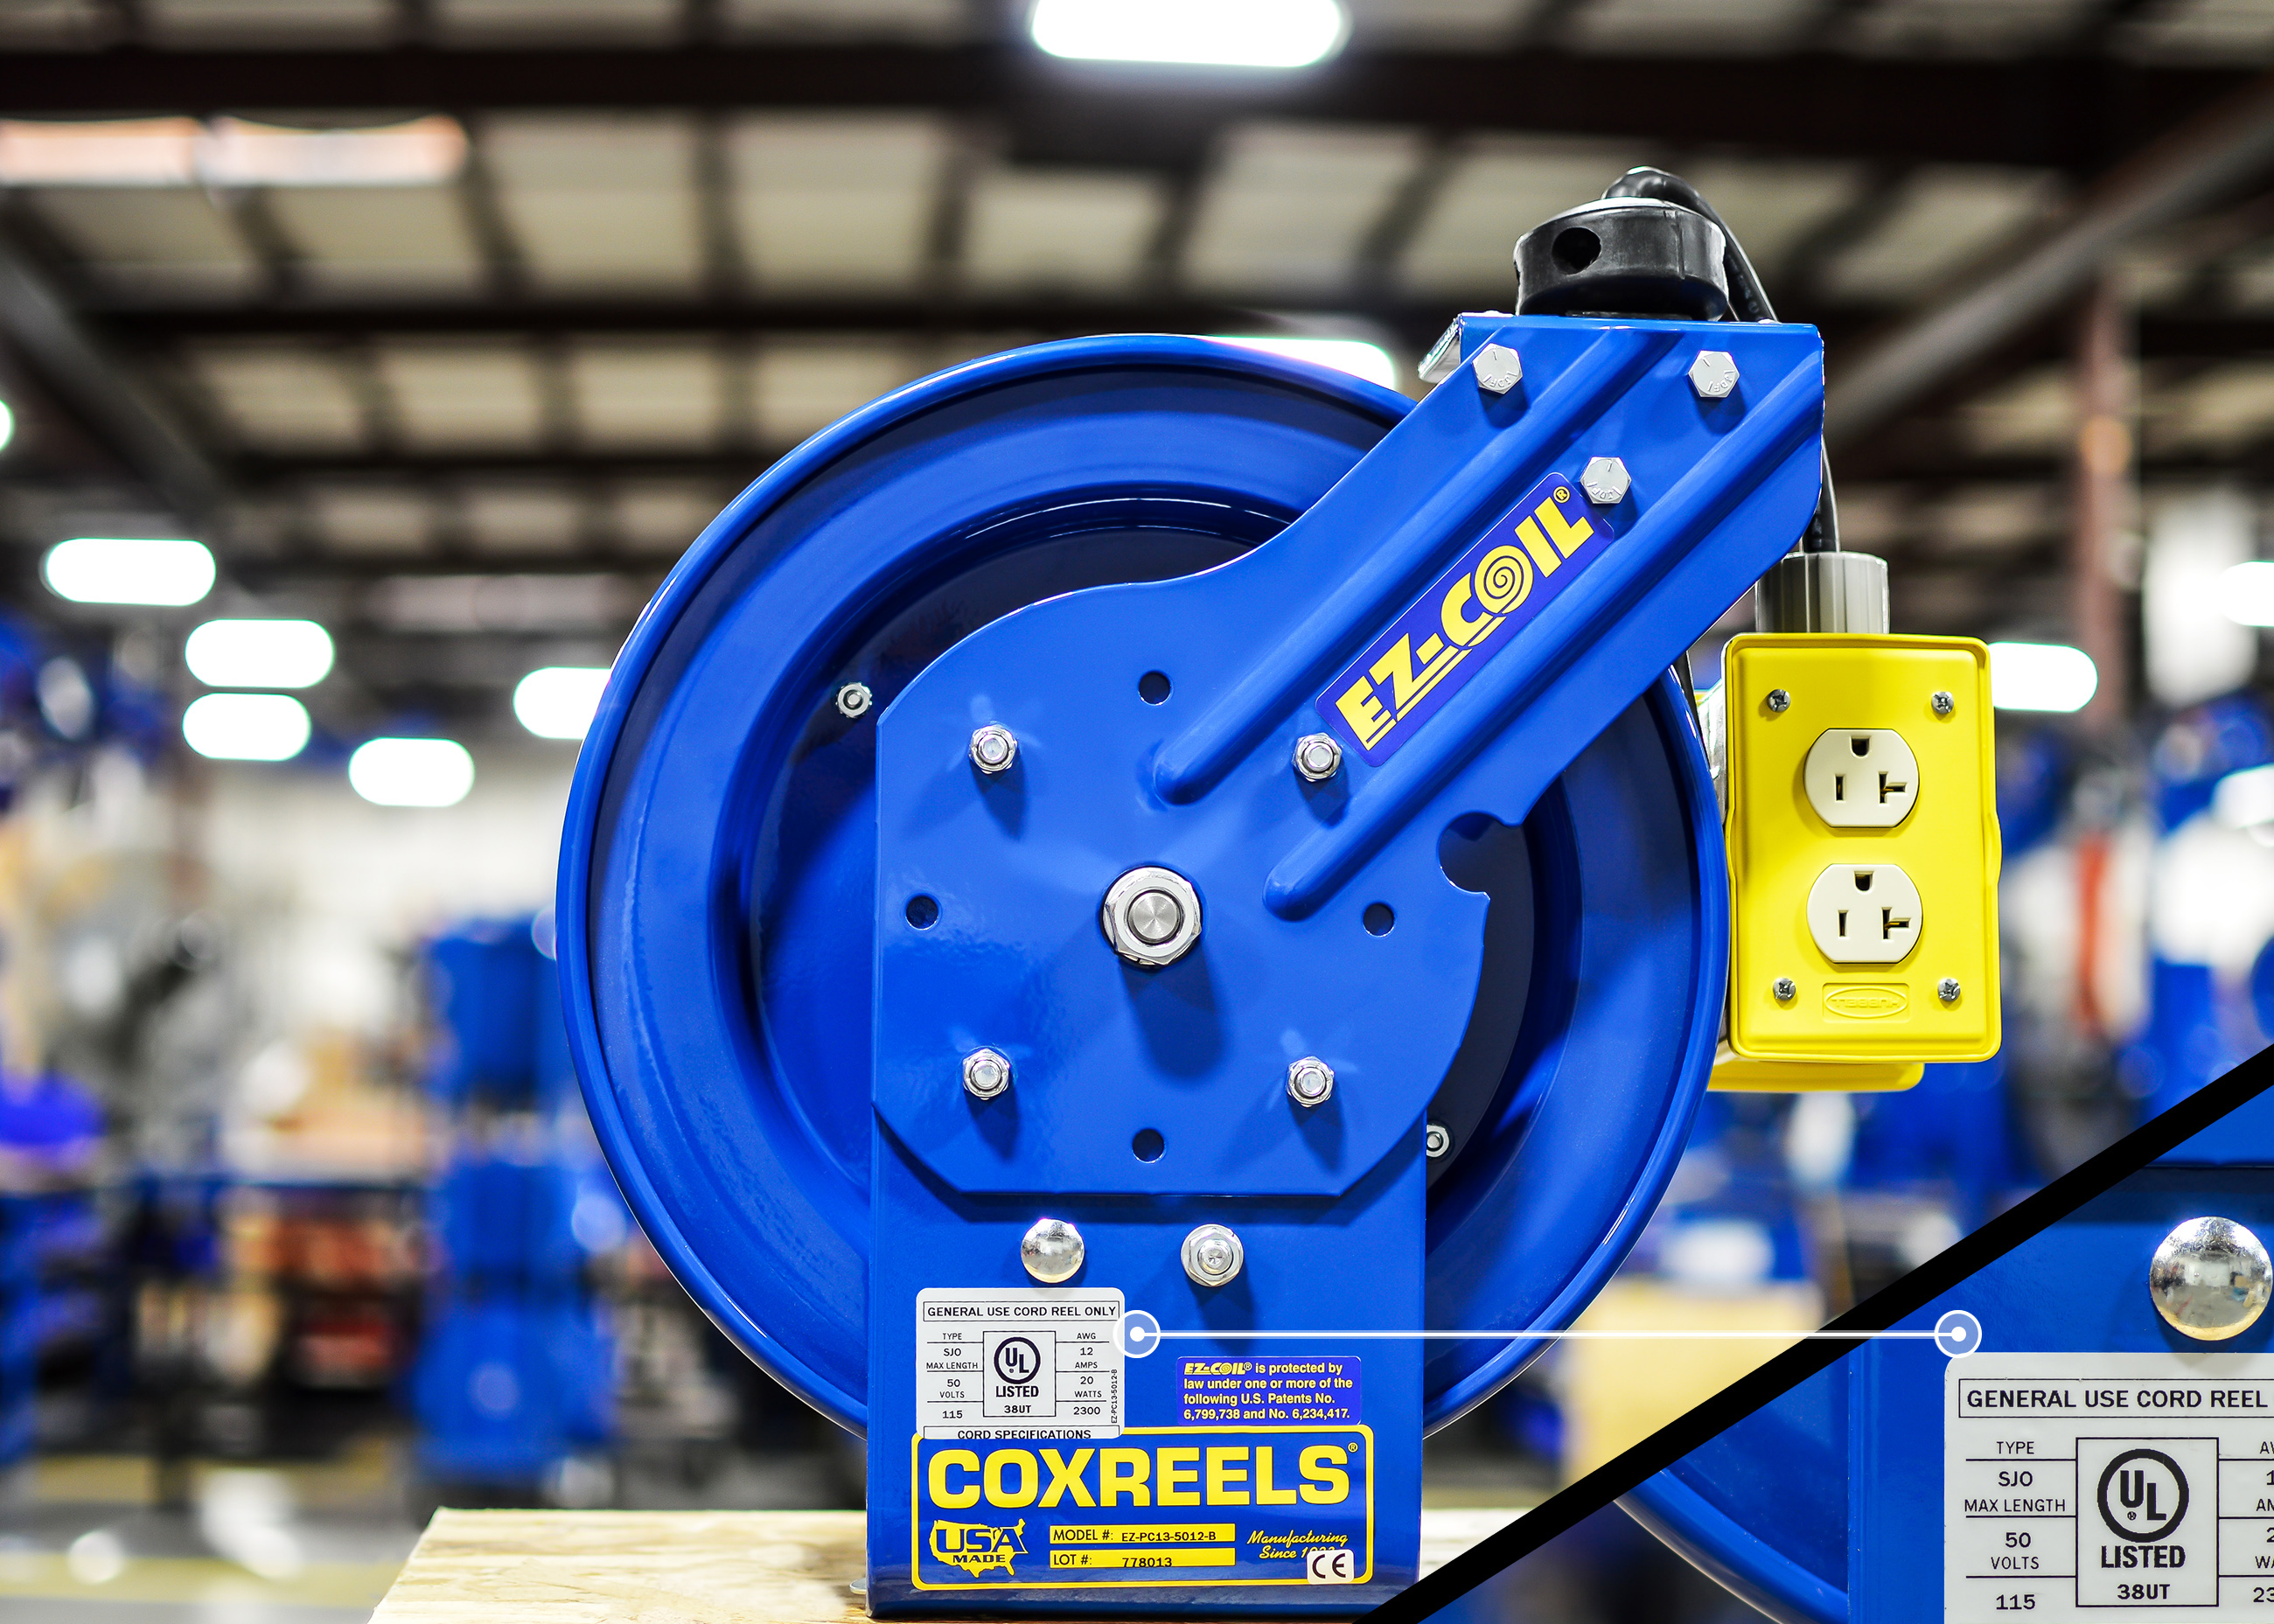 Coxreels Announces Expansion of UL-Approved Products